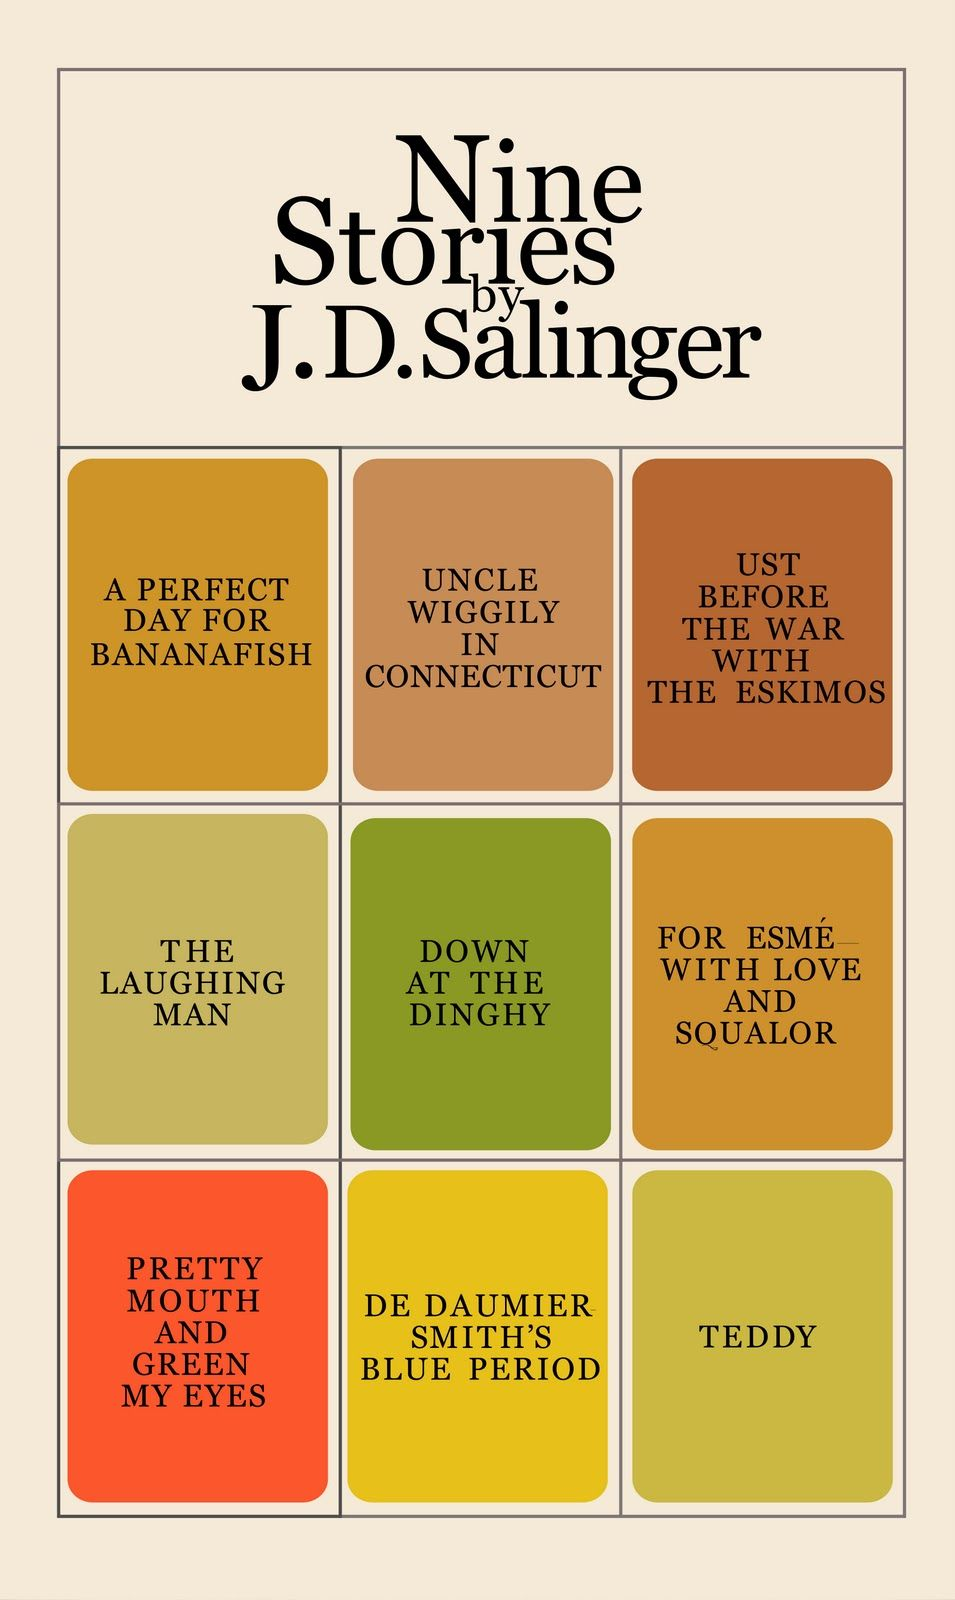 nine stories by jd salinger.jpg